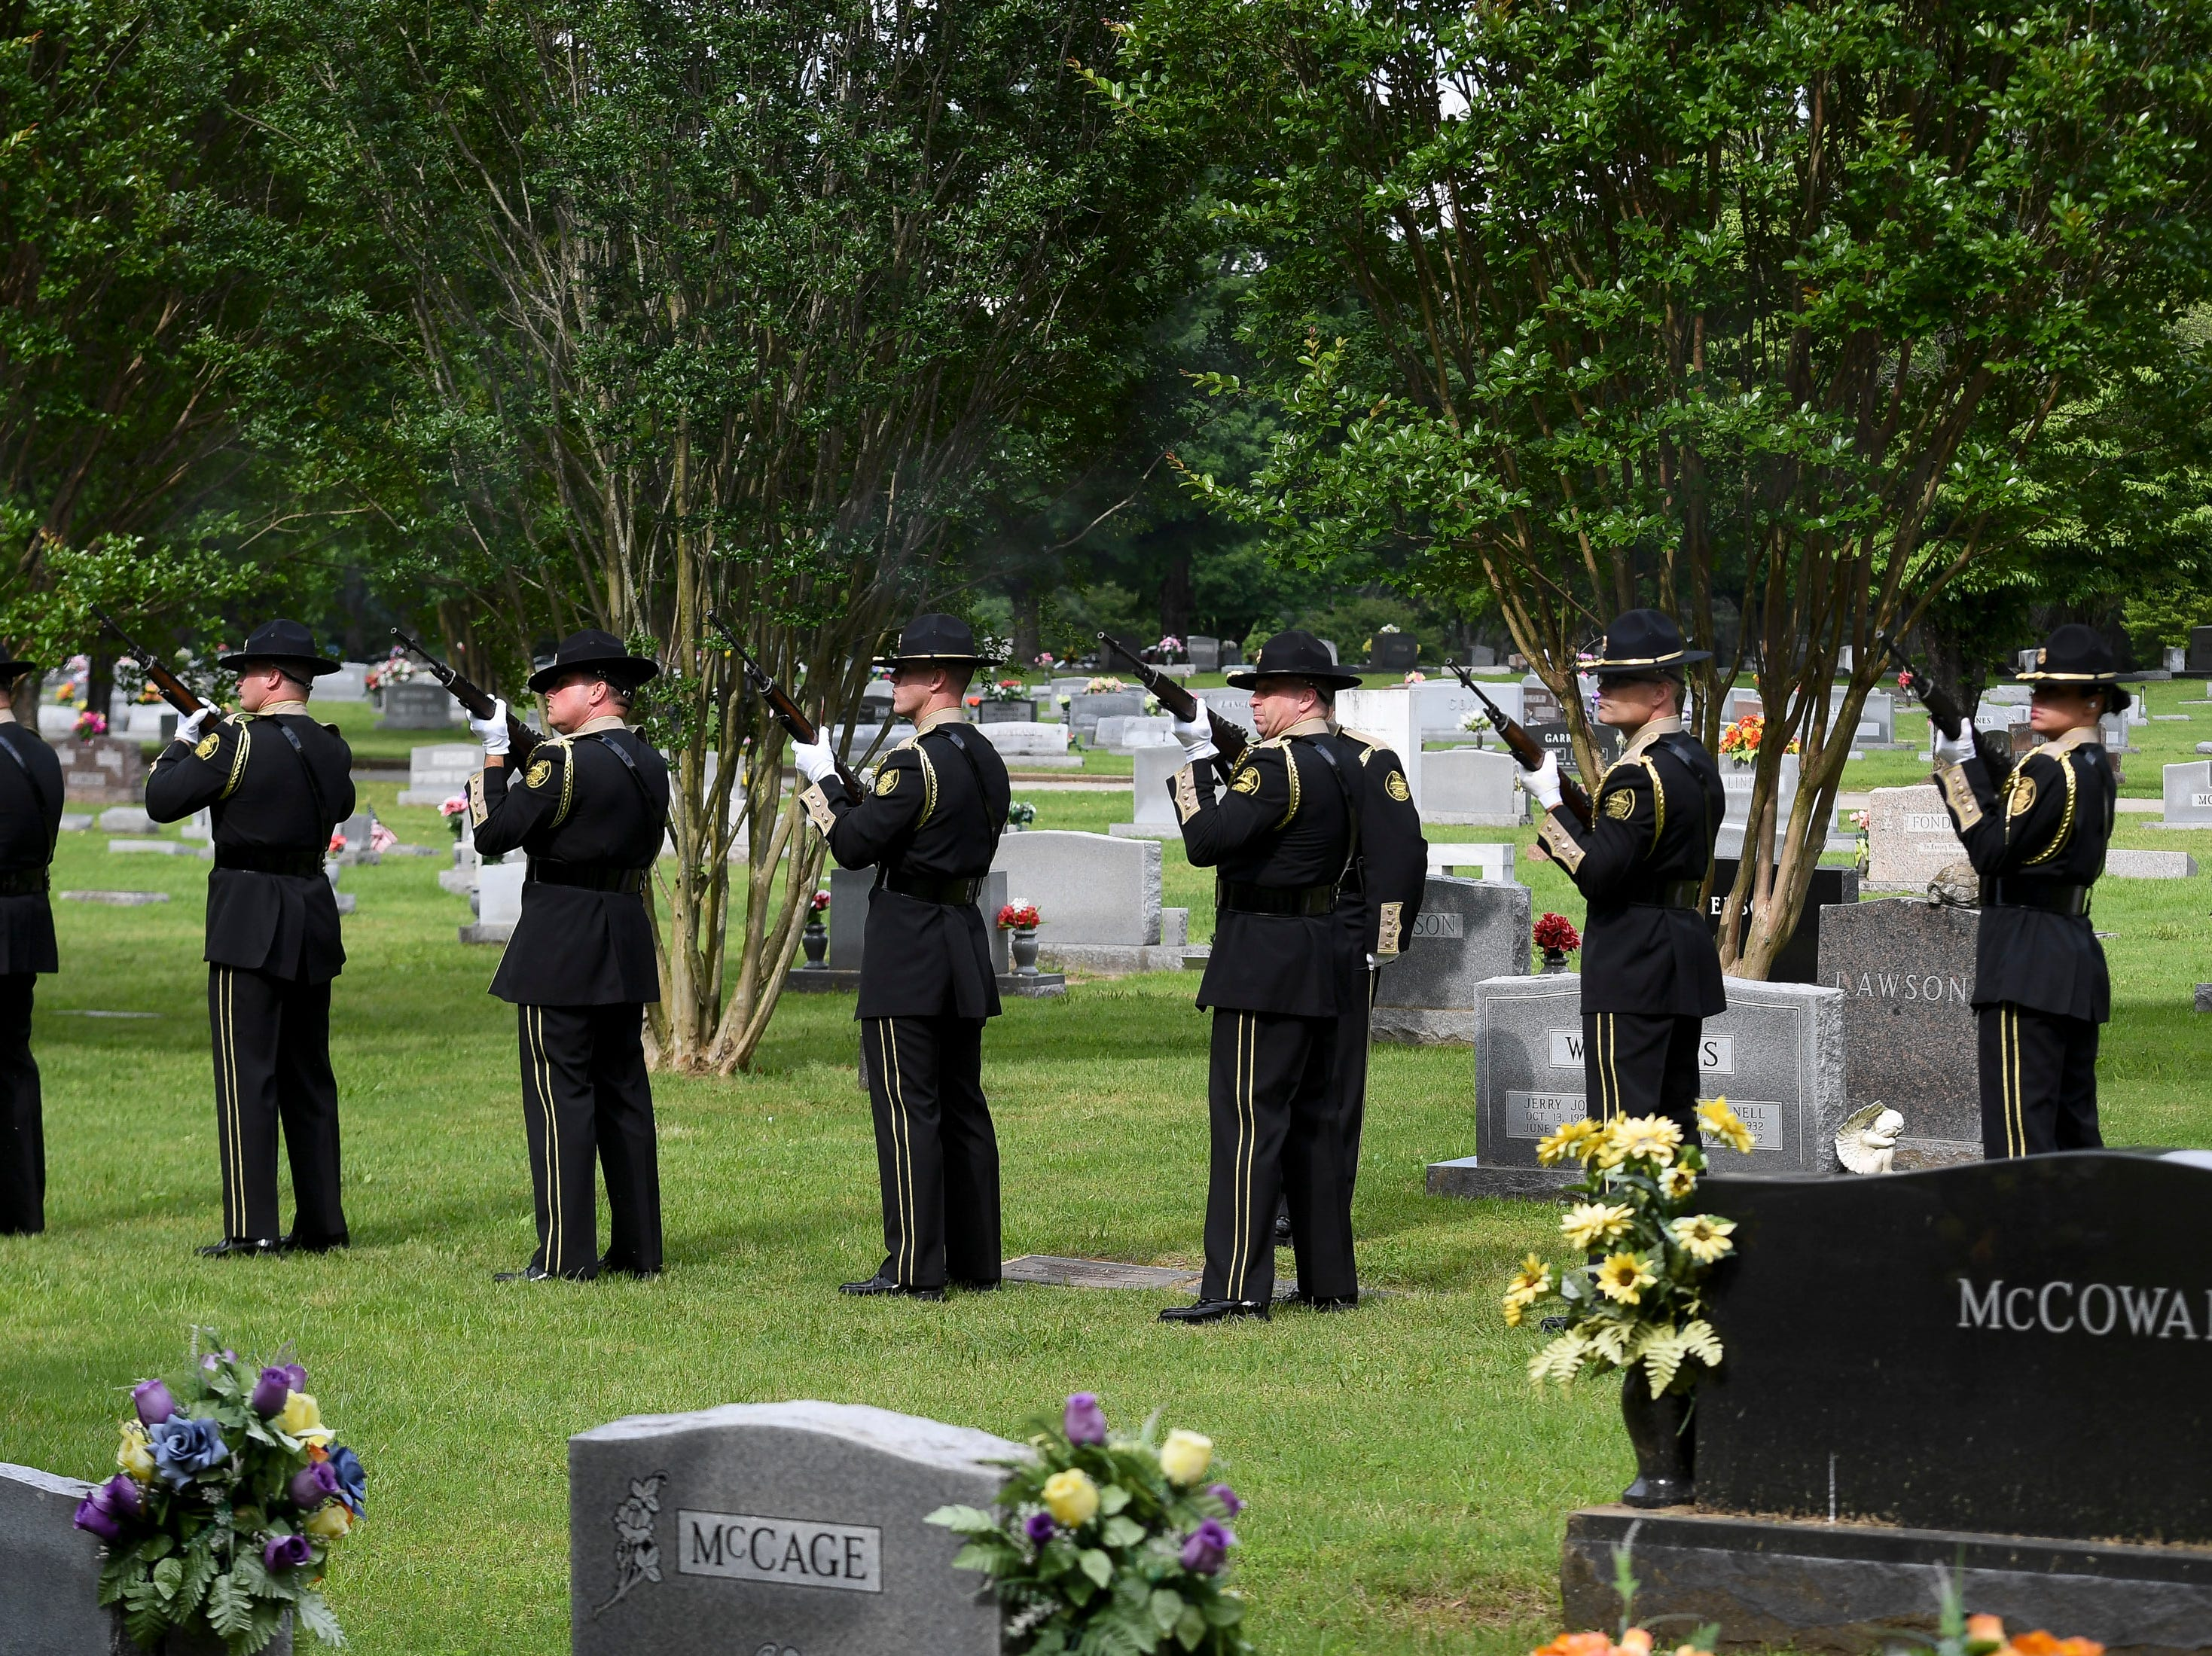 The honor guard fires a 21 gun salute during the burial of Tennessee State Trooper Matthew Gatti at Ridgecrest Cemetery in Jackson, Tenn., Monday, May 13, 2019. Gatti died in the line of duty in an accident while responding to a car fire on I-40 in Madison County on May 6.